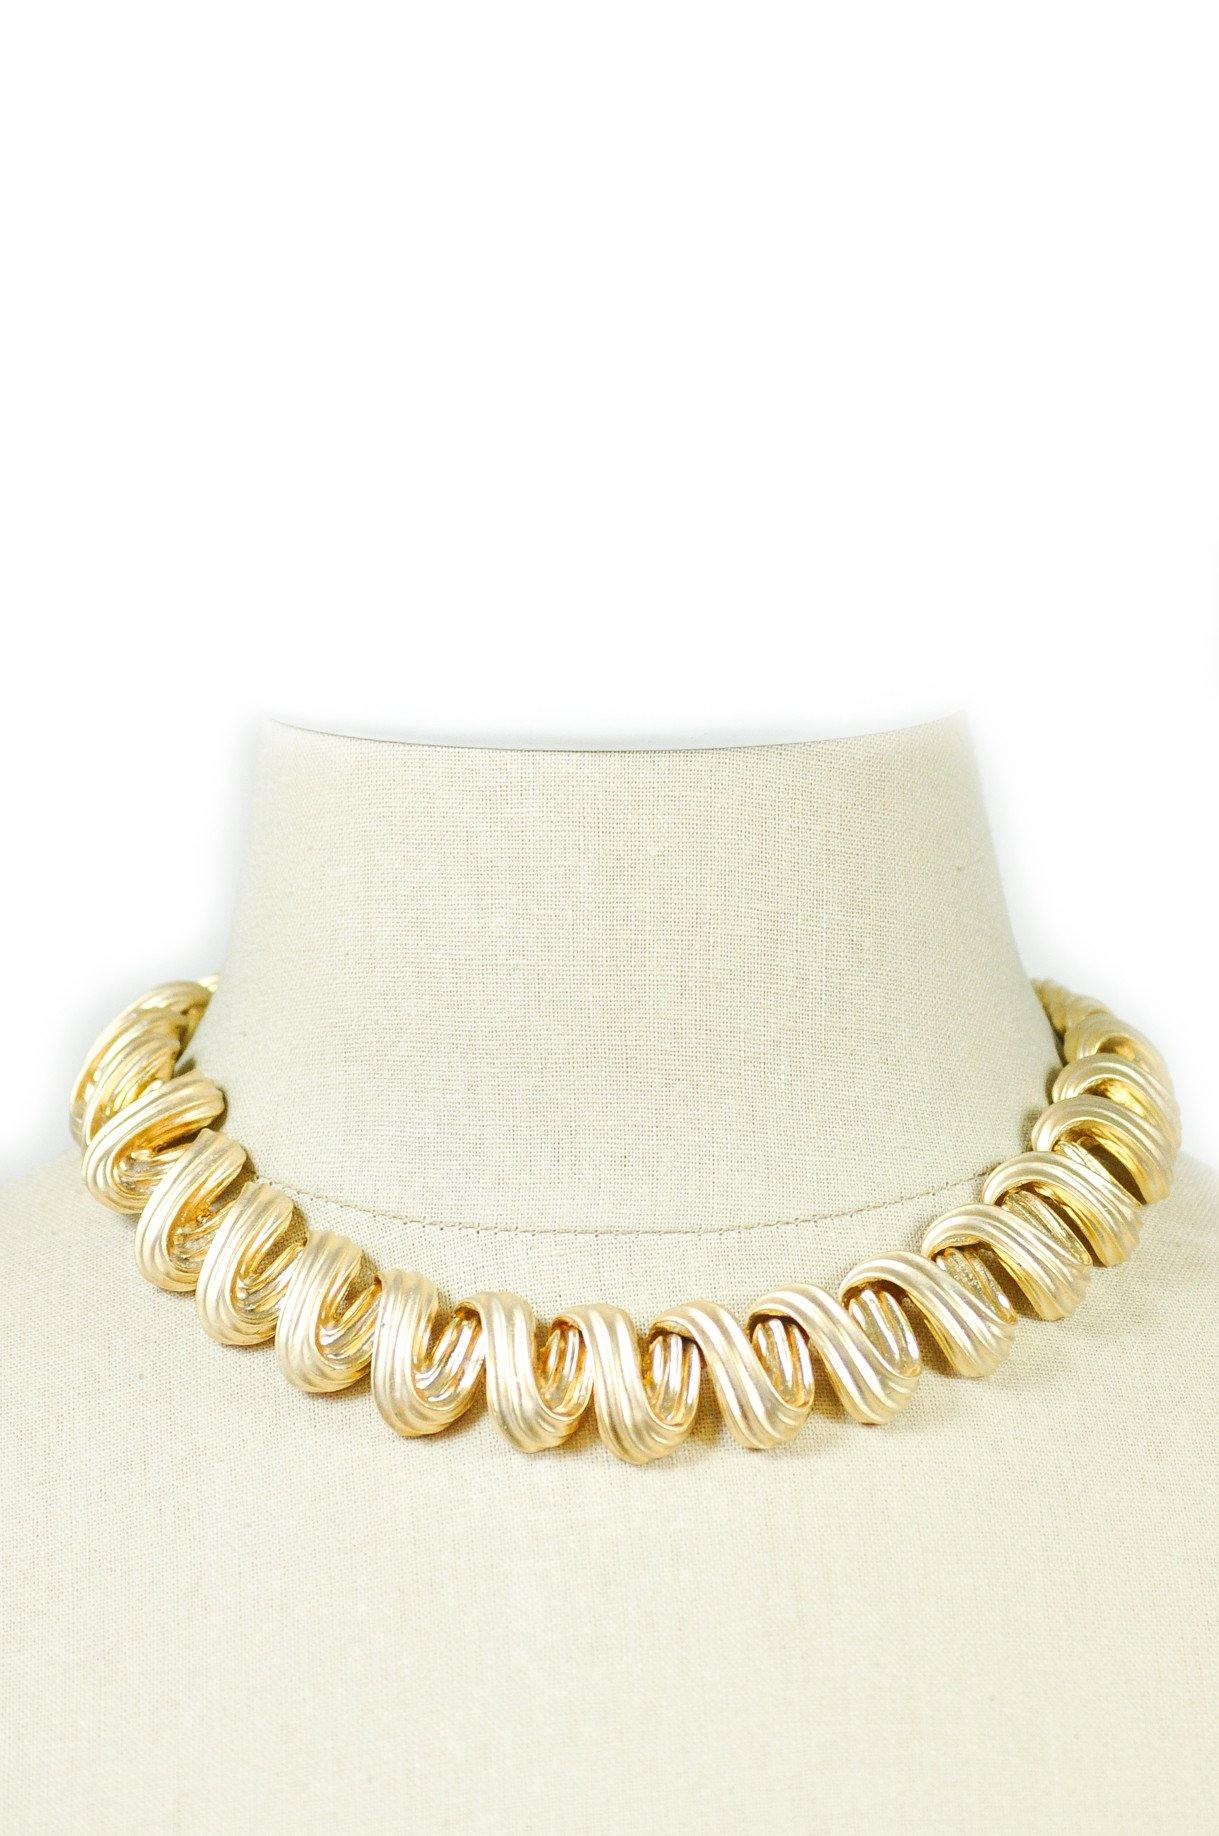 80's__Vintage__Statement Swirl Necklace